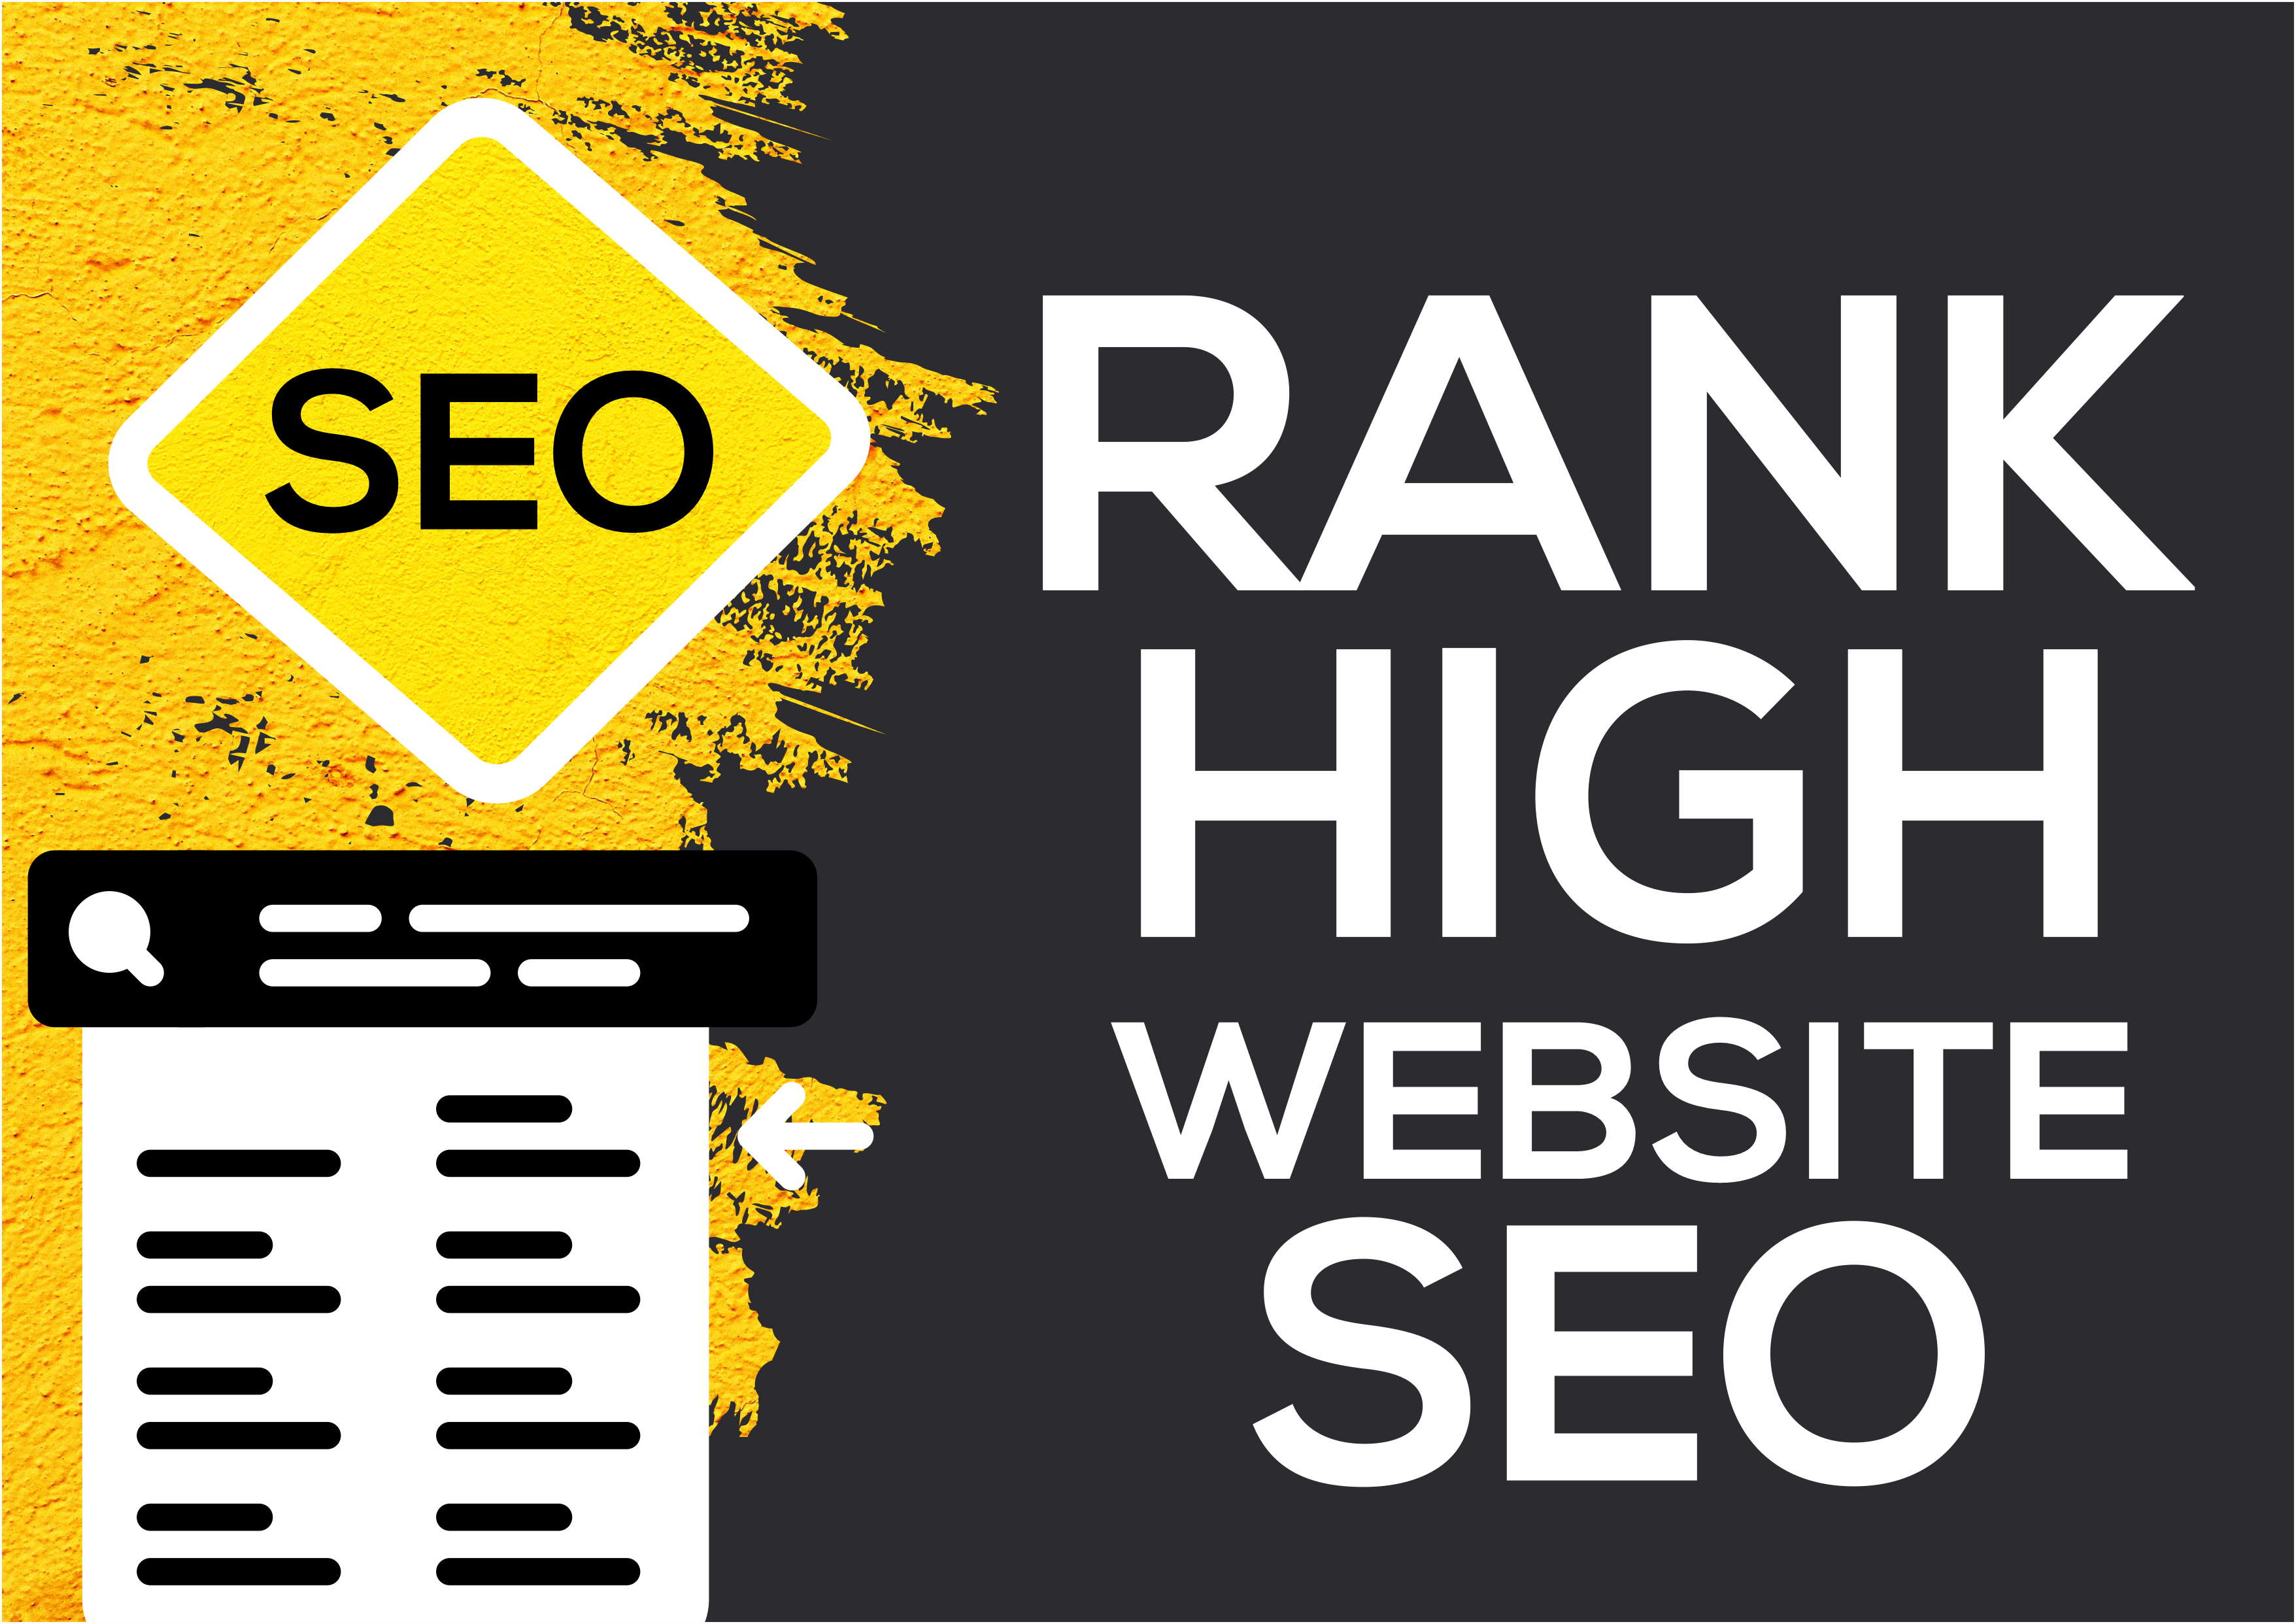 I will do high quality SEO for your website Rank High